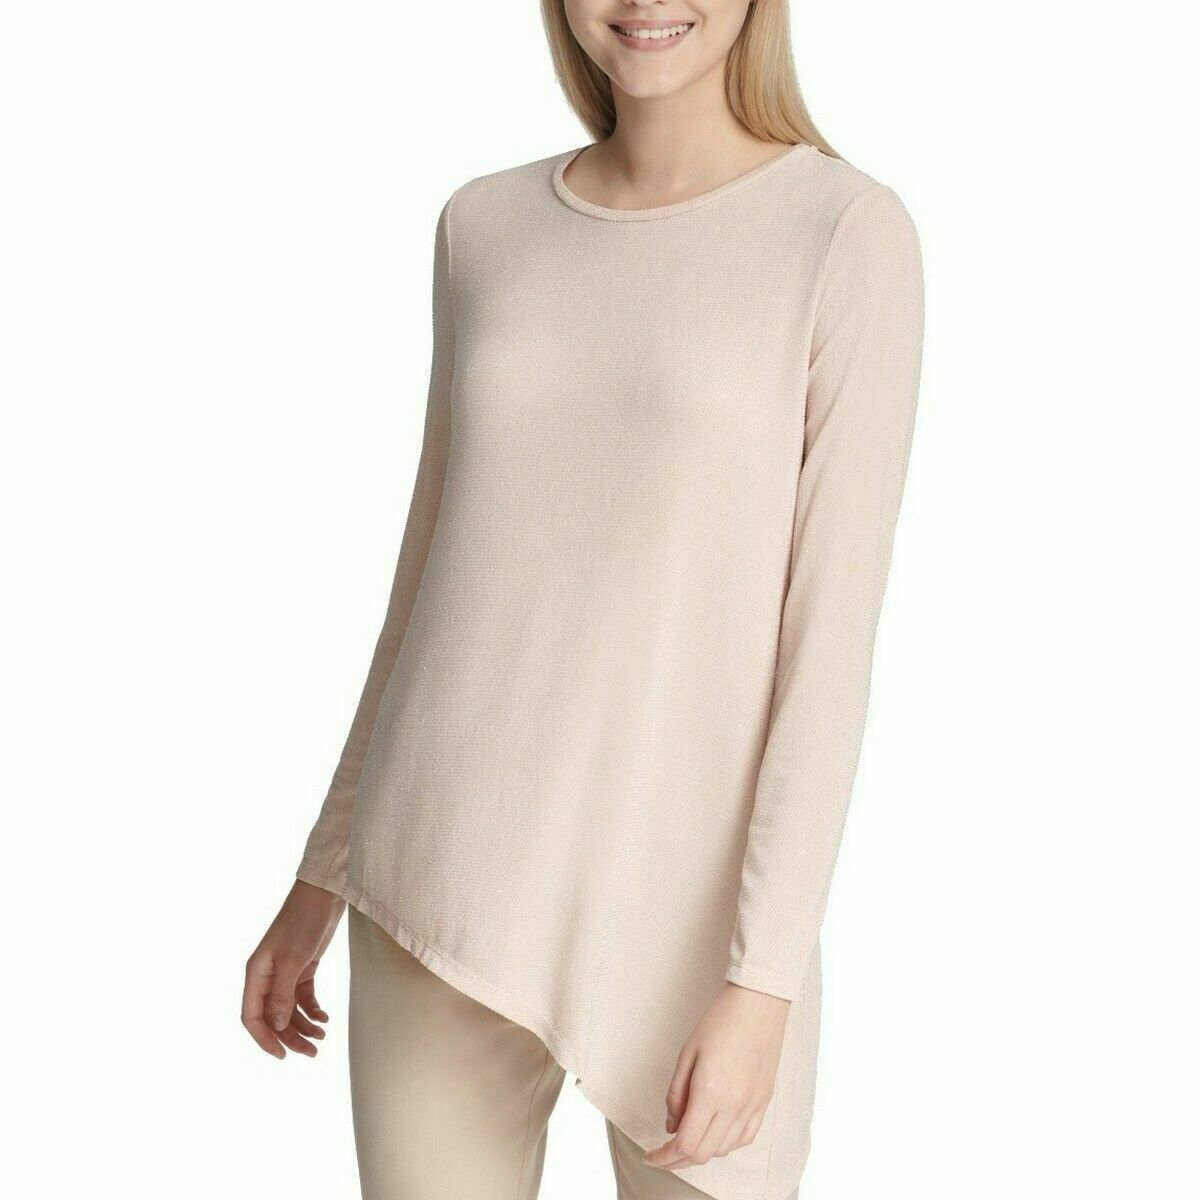 Primary image for CALVIN KLEIN Women's Shimmery Blush Asymmetrical Metallic Top Size Small $69